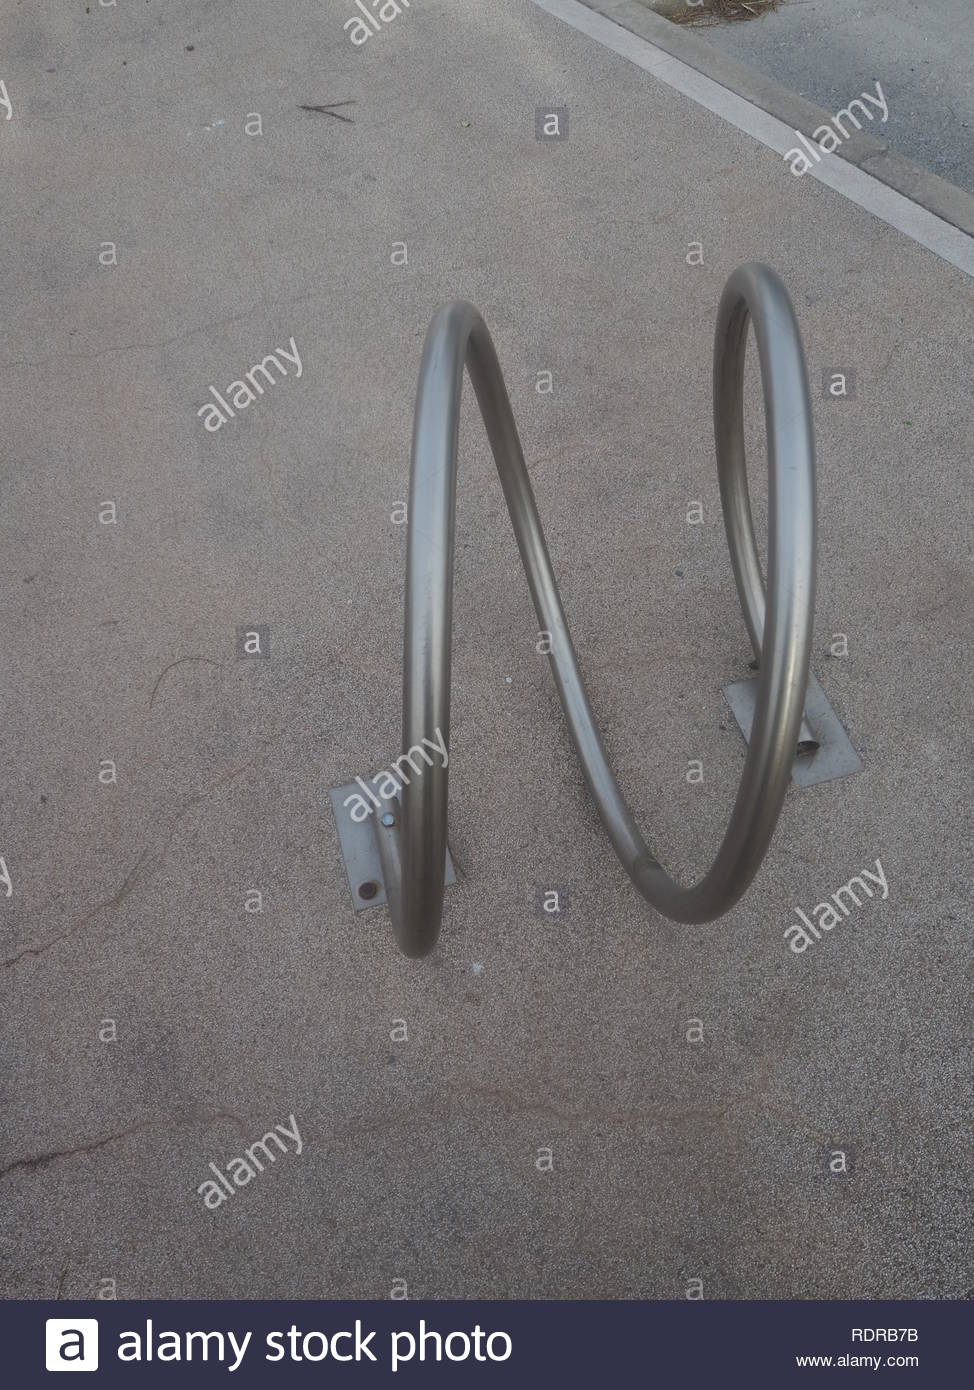 Metallic bicycle attachment base on the sidewalk - Stock Image